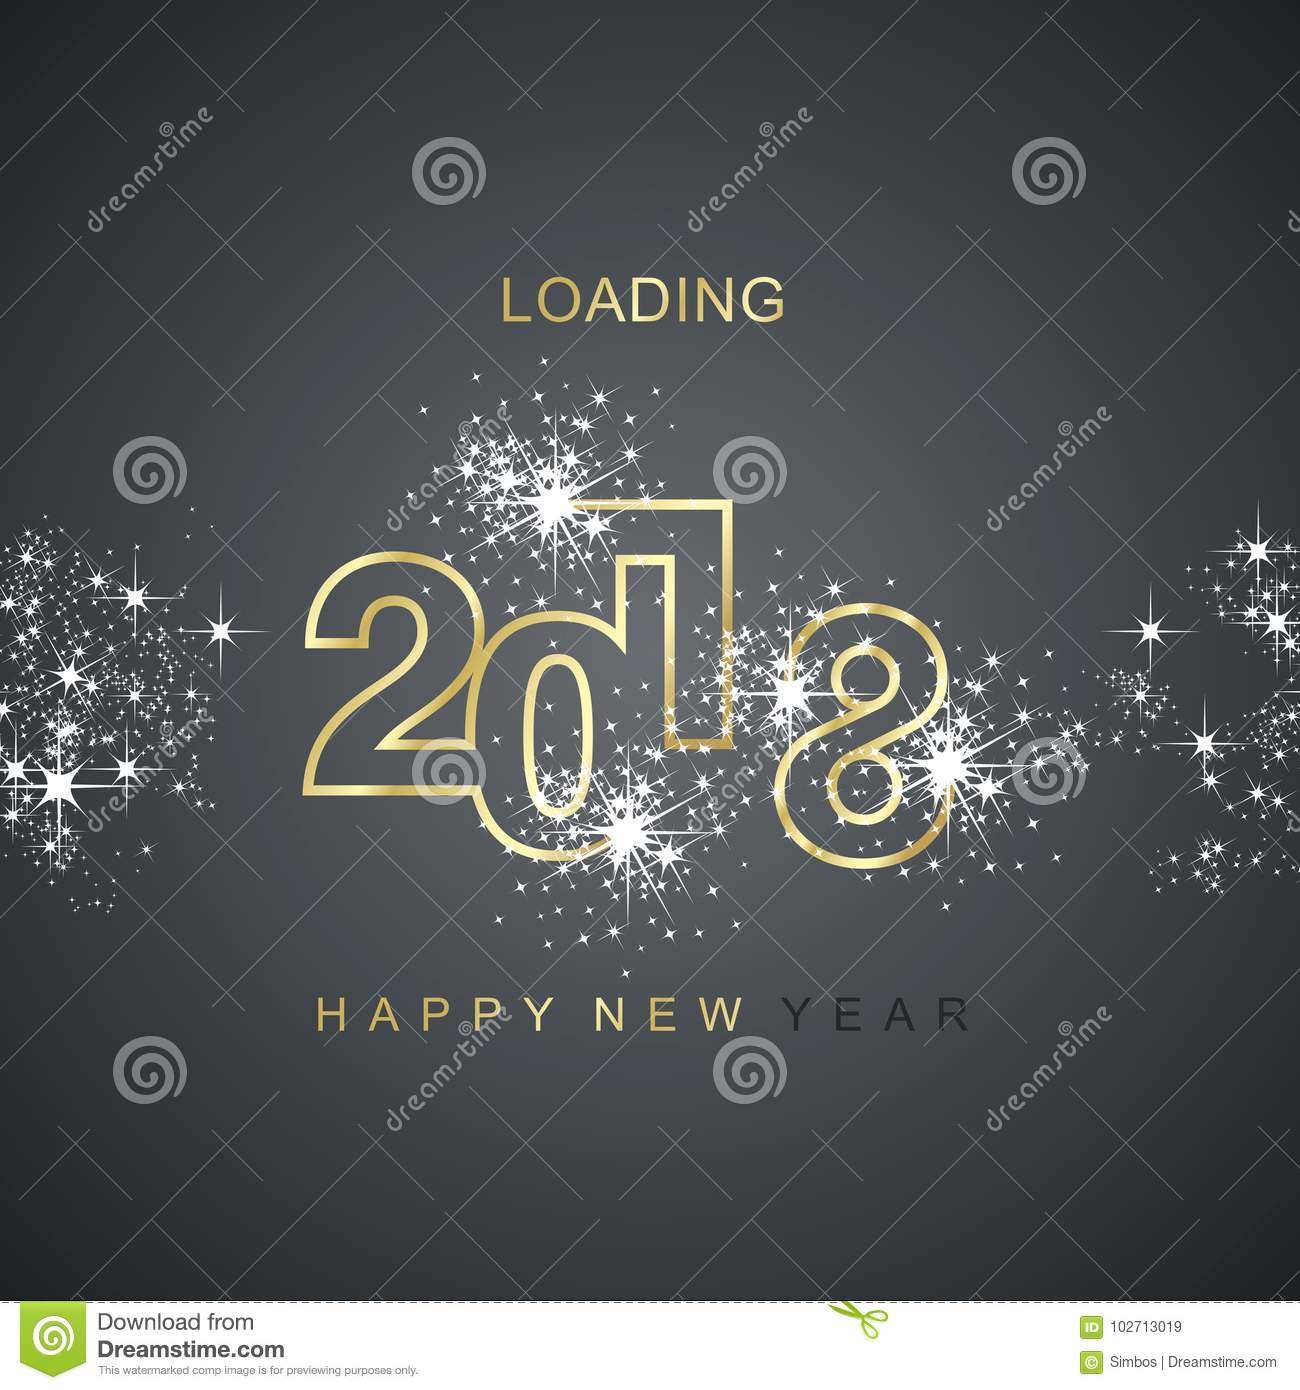 Happy New Year 2018 loading spark firework gold black vector